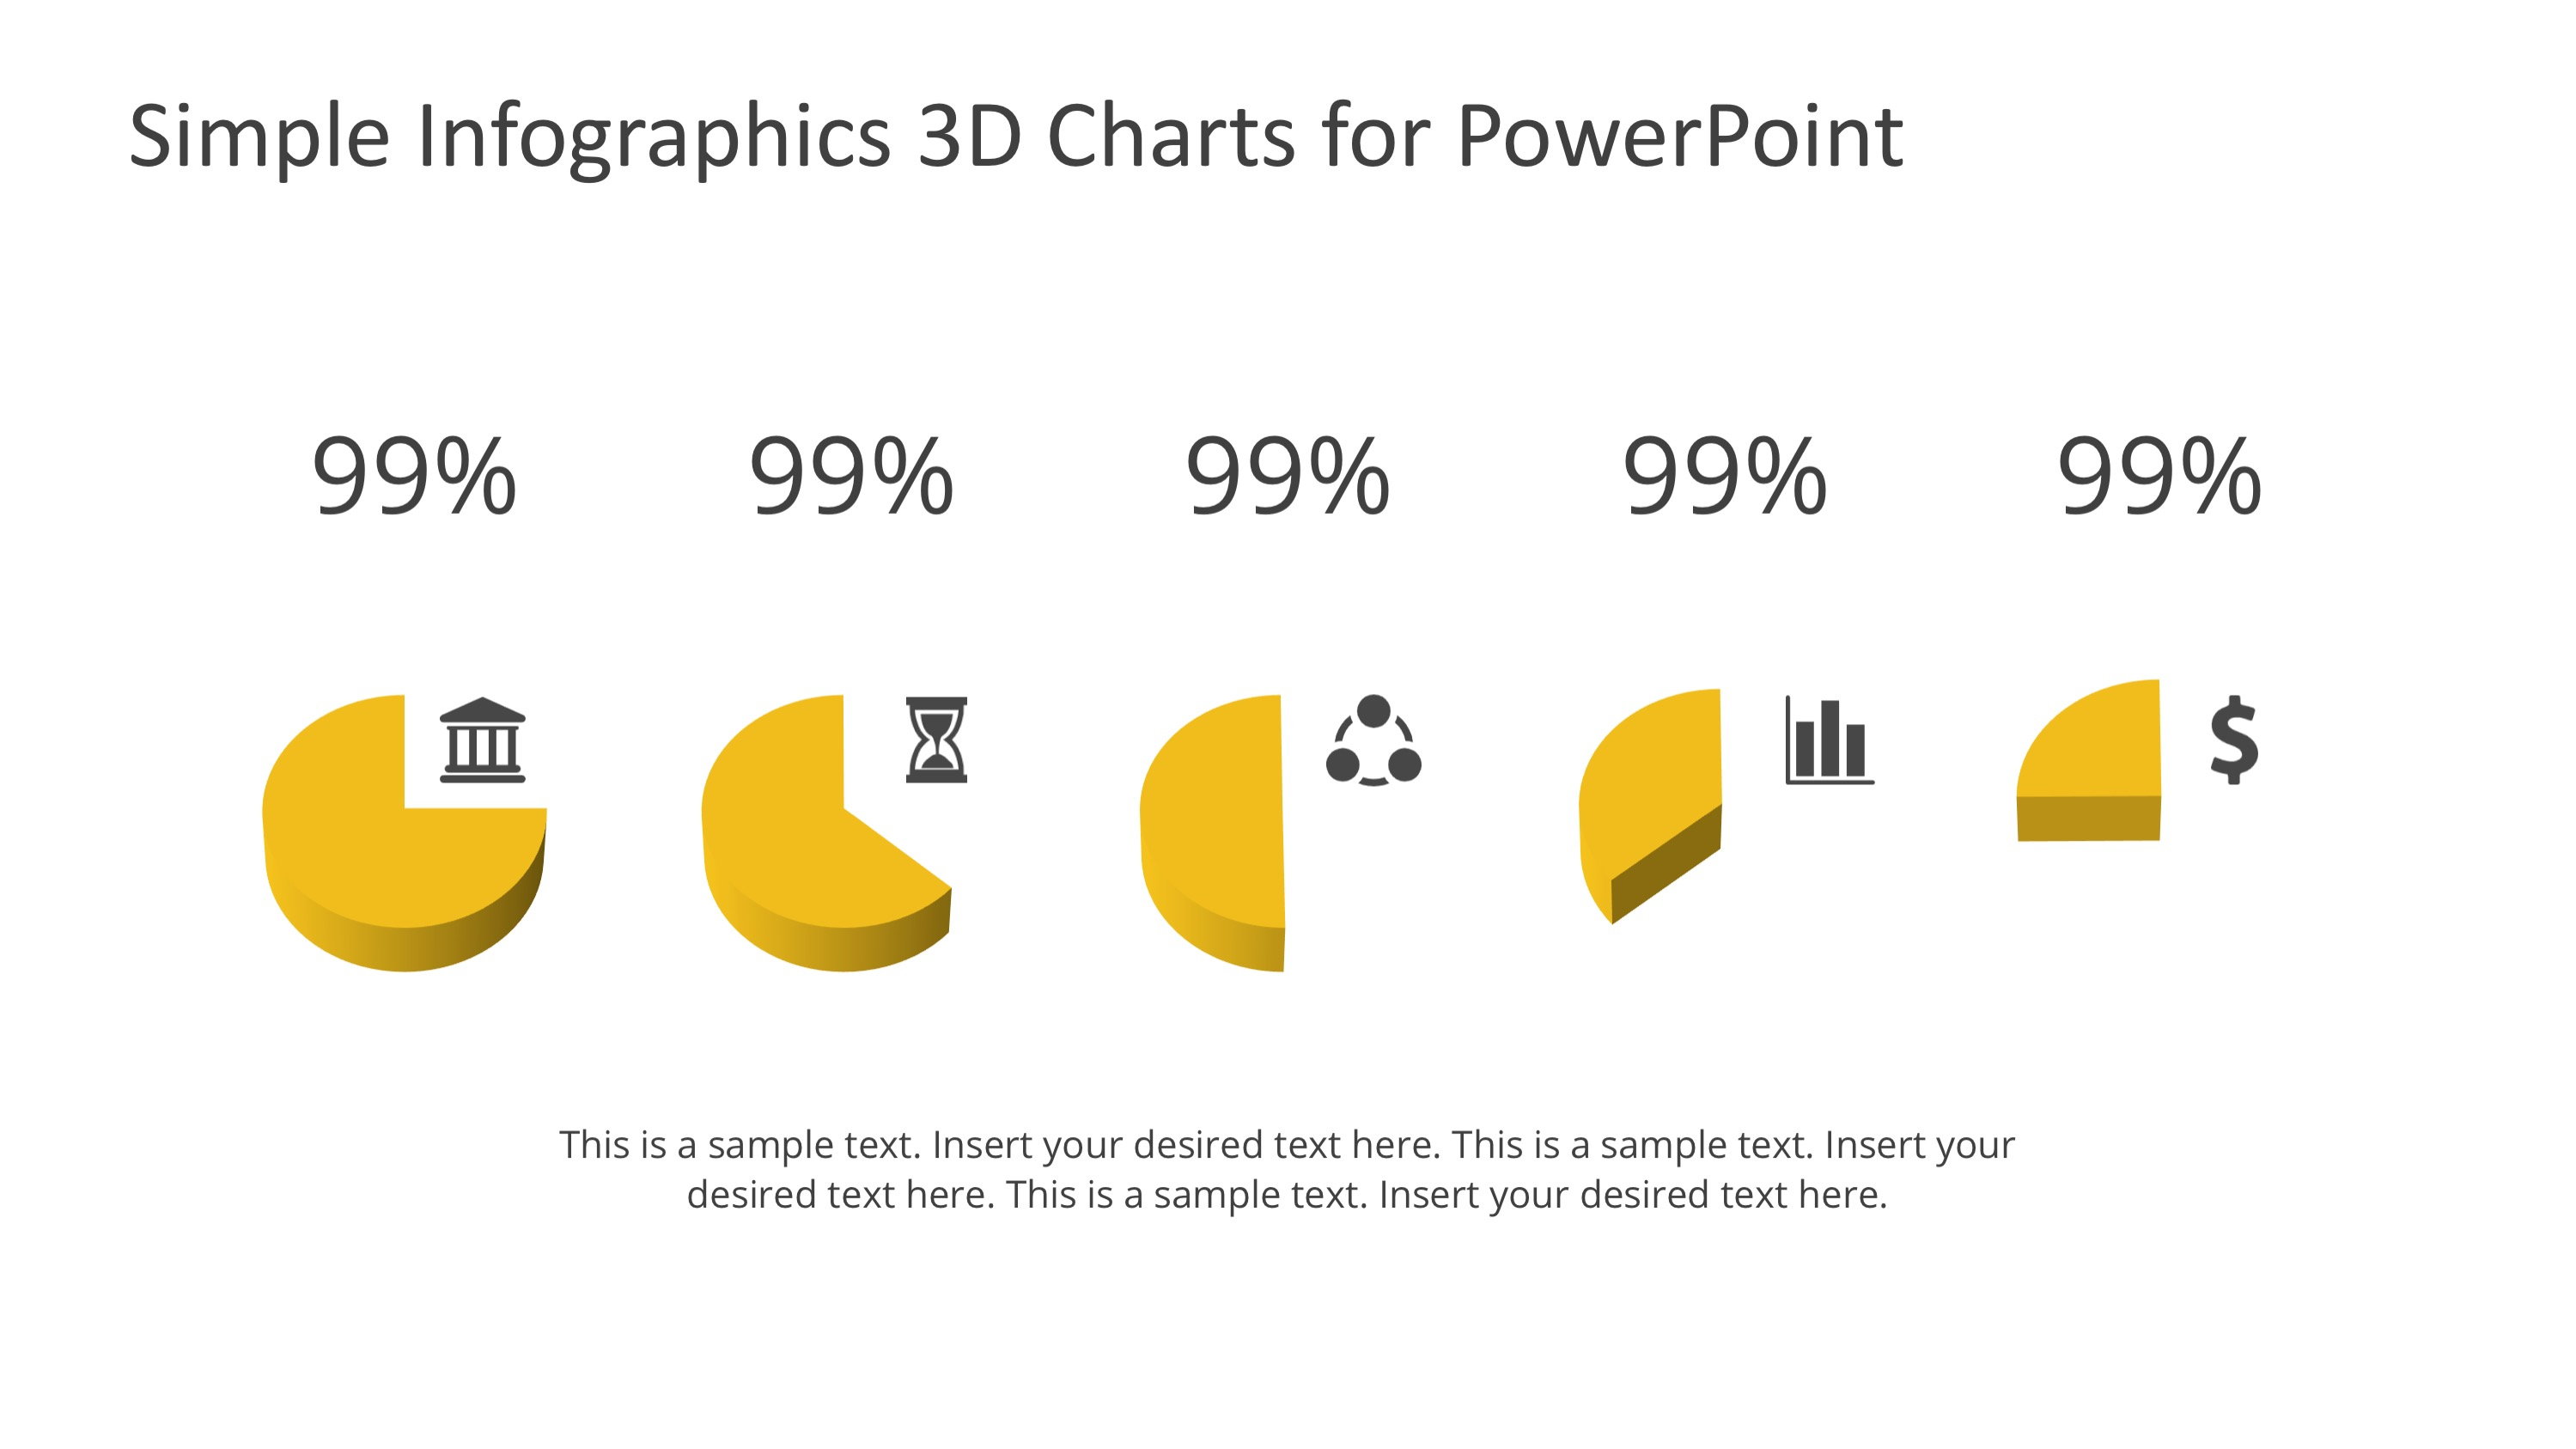 PPT Pie Charts Infographic Elements